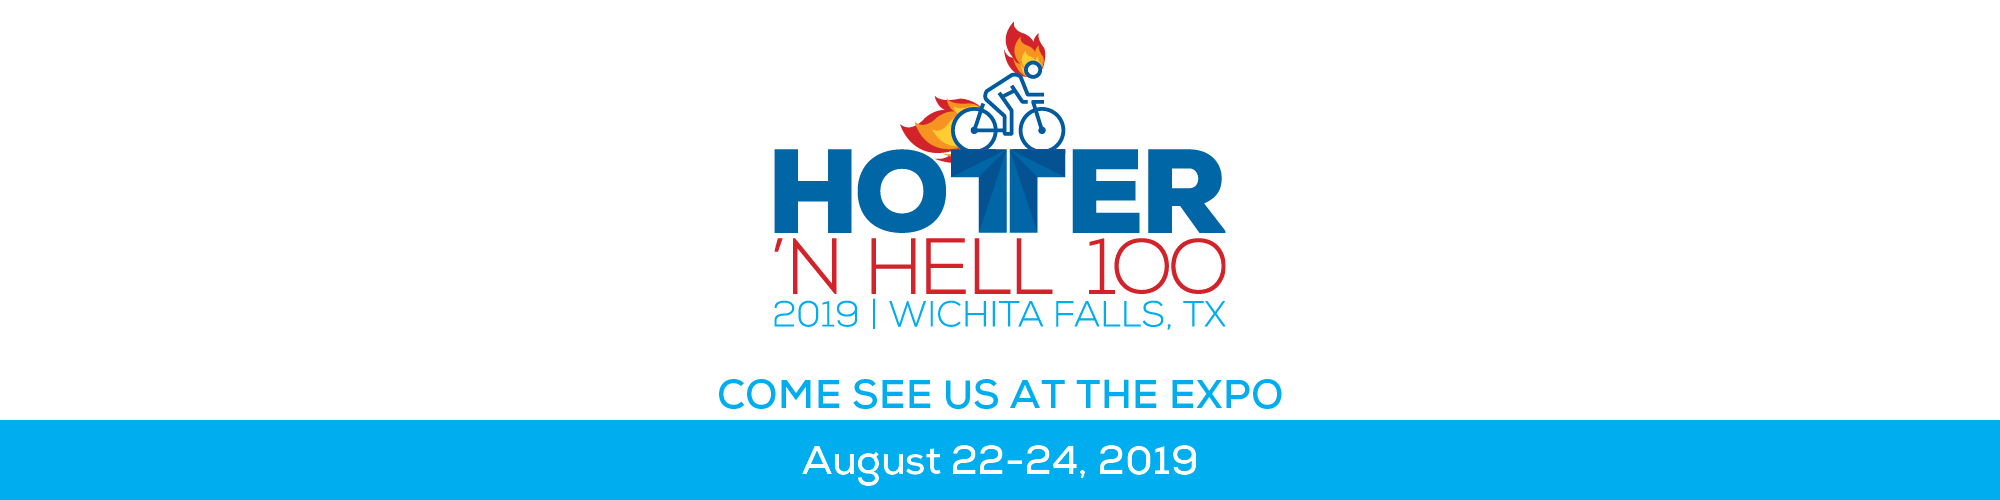 Hotter'N Hell 100. Come See Us At The Expo August 22-24, 2019 in Wichita Falls Tx.